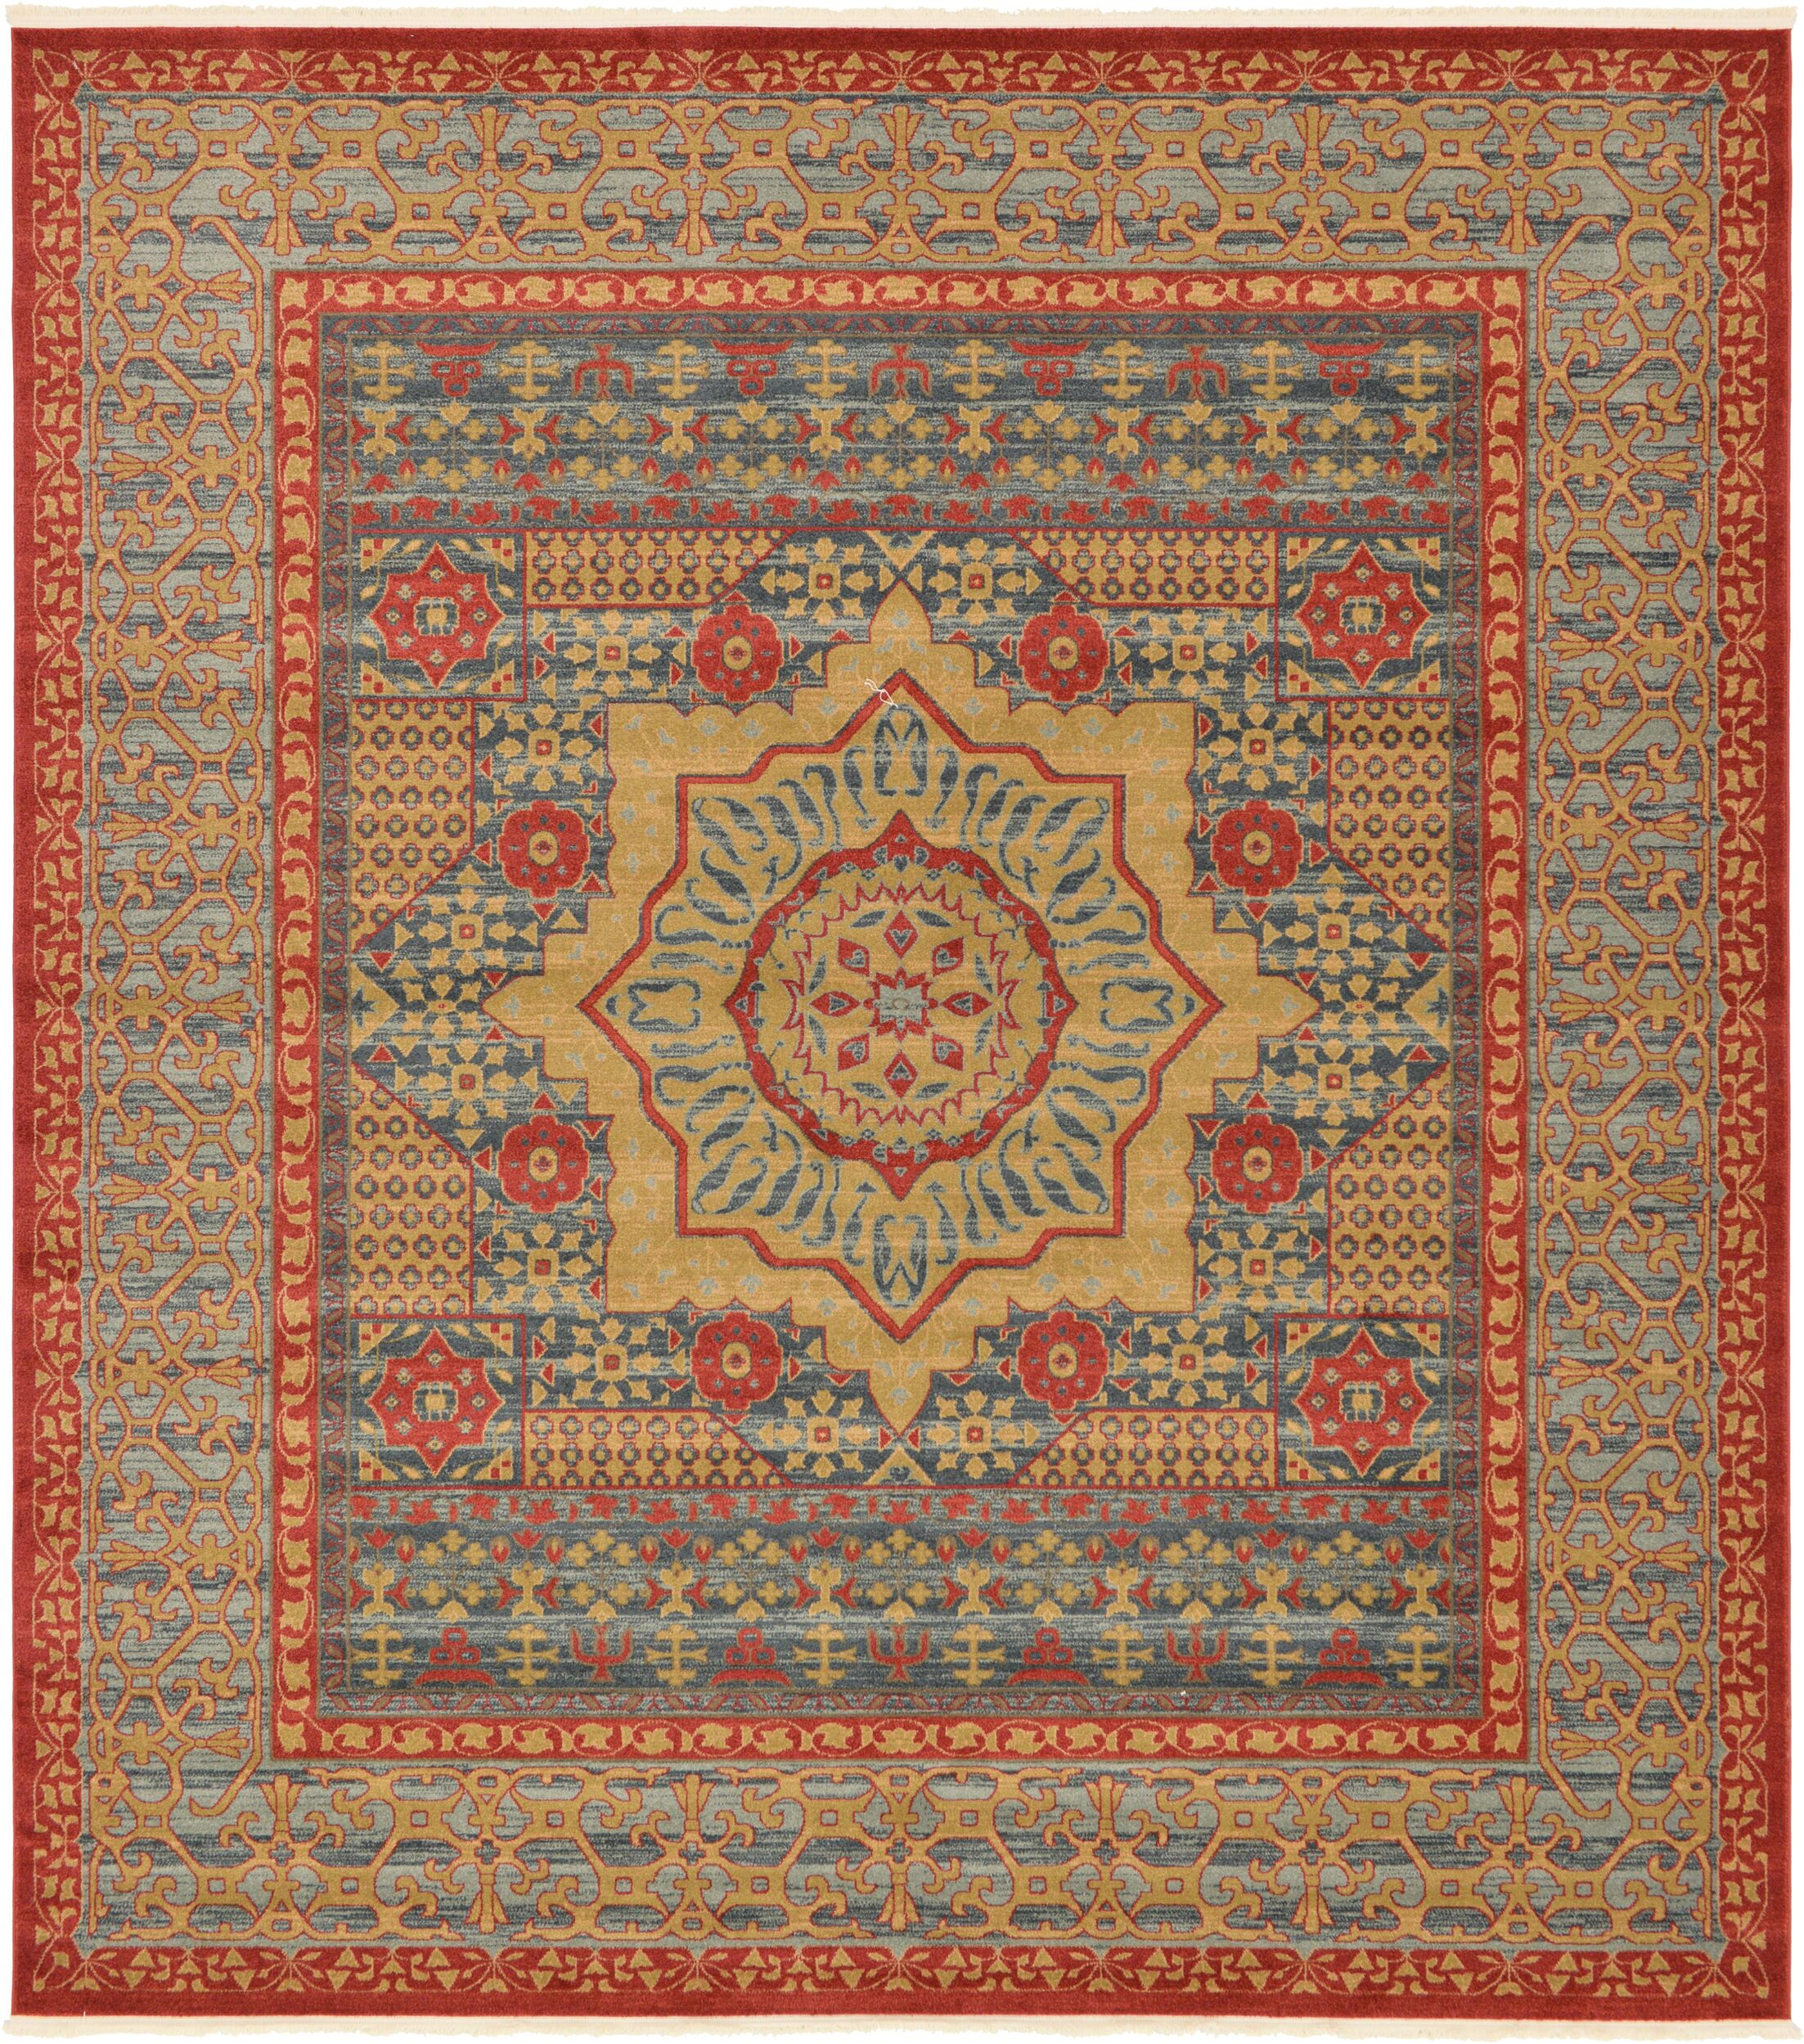 Laurelwood Red Area Rug Rug Size: Rectangle 10' x 11' 4